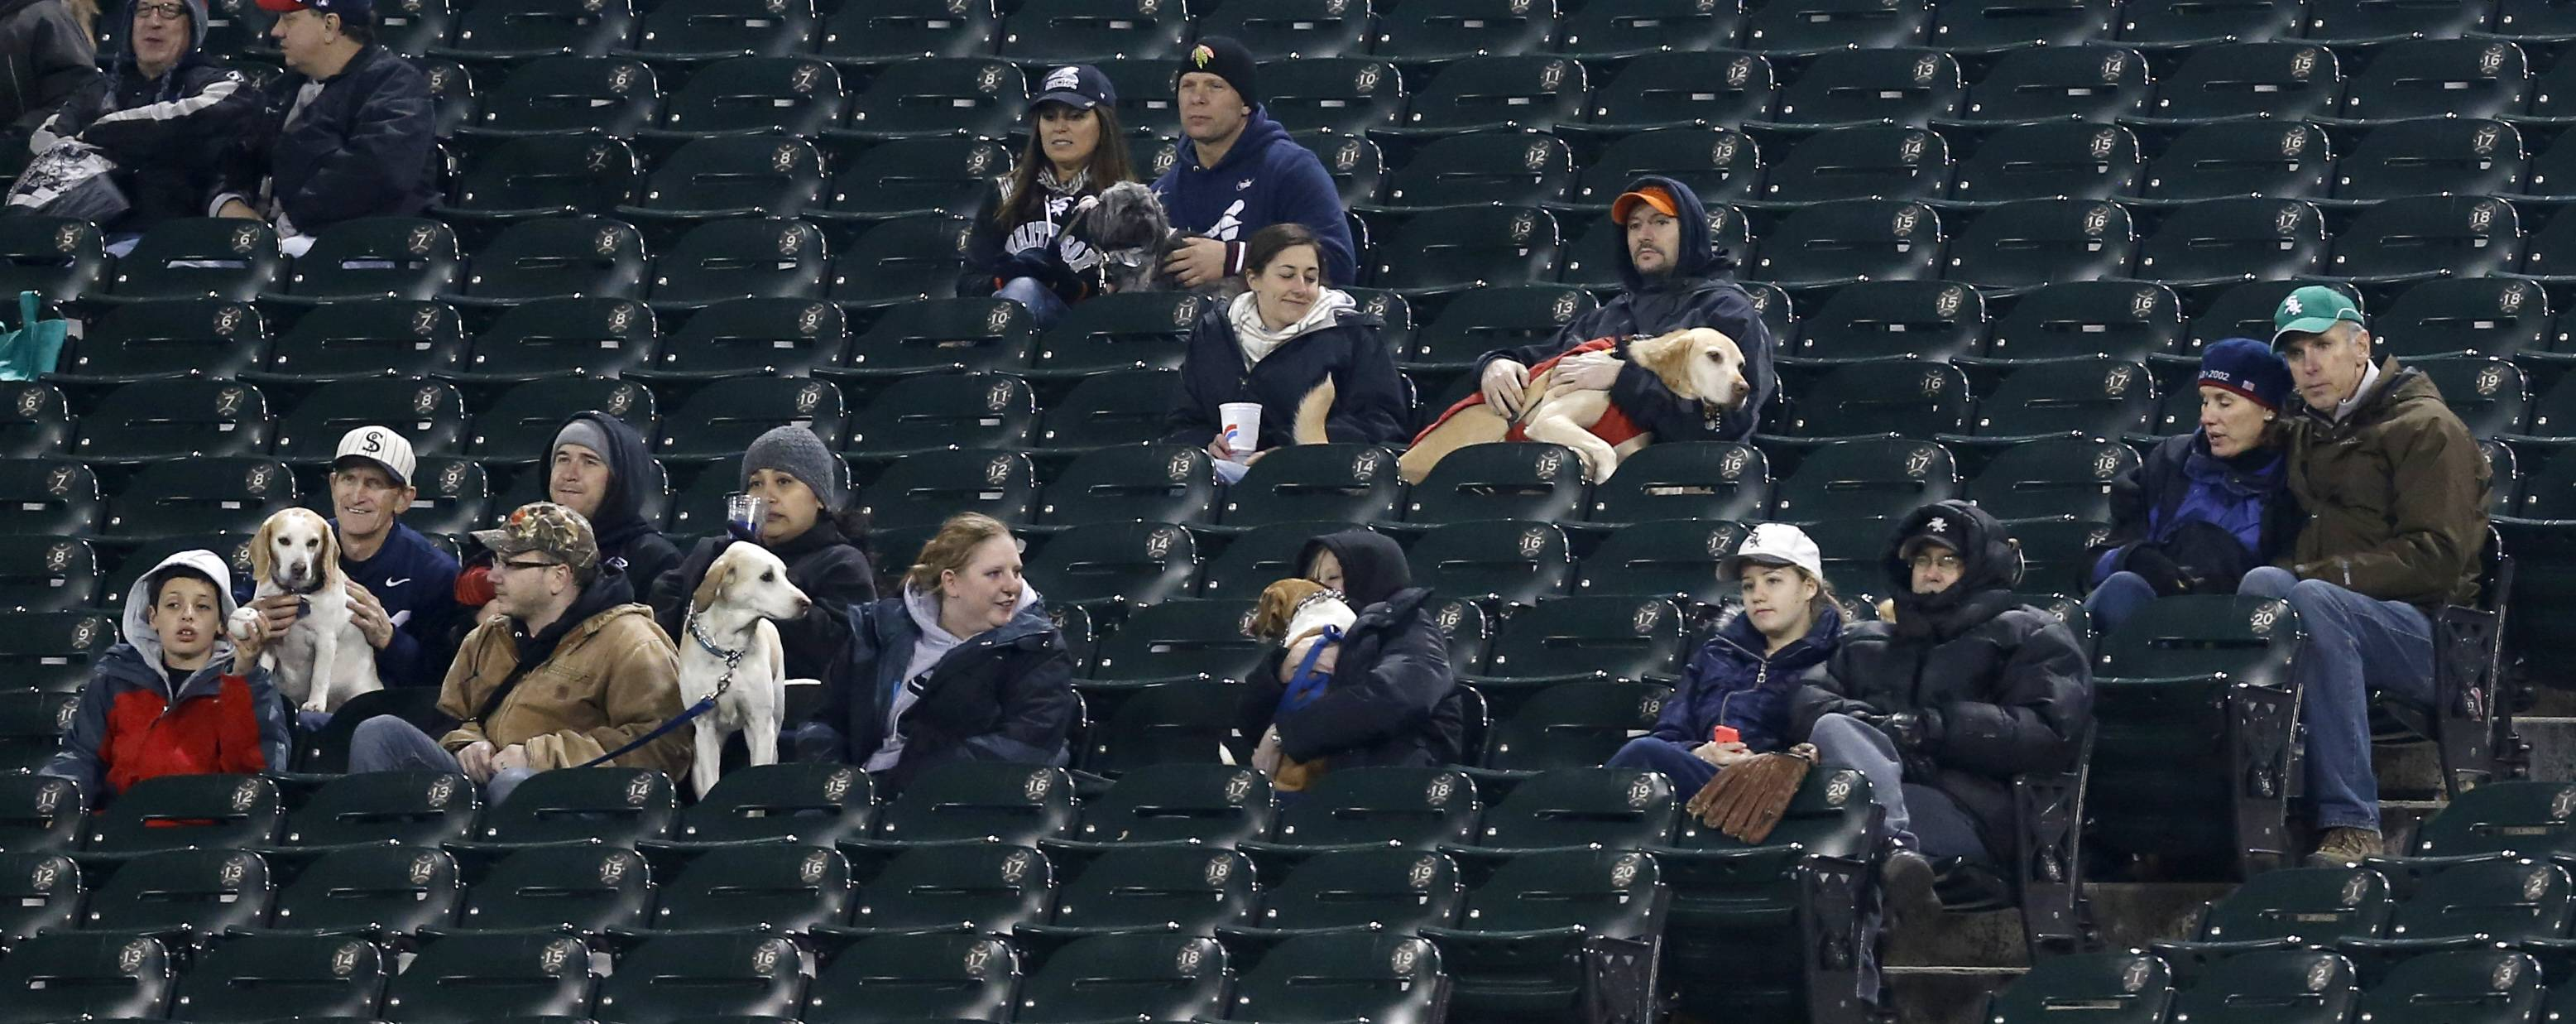 Baseball fans sit in the outfield seats with their dogs at Dog Days during the fourth inning of a baseball game between the Chicago White Sox and the Tampa Bay Rays Monday, April 28, 2014, in Chicago.